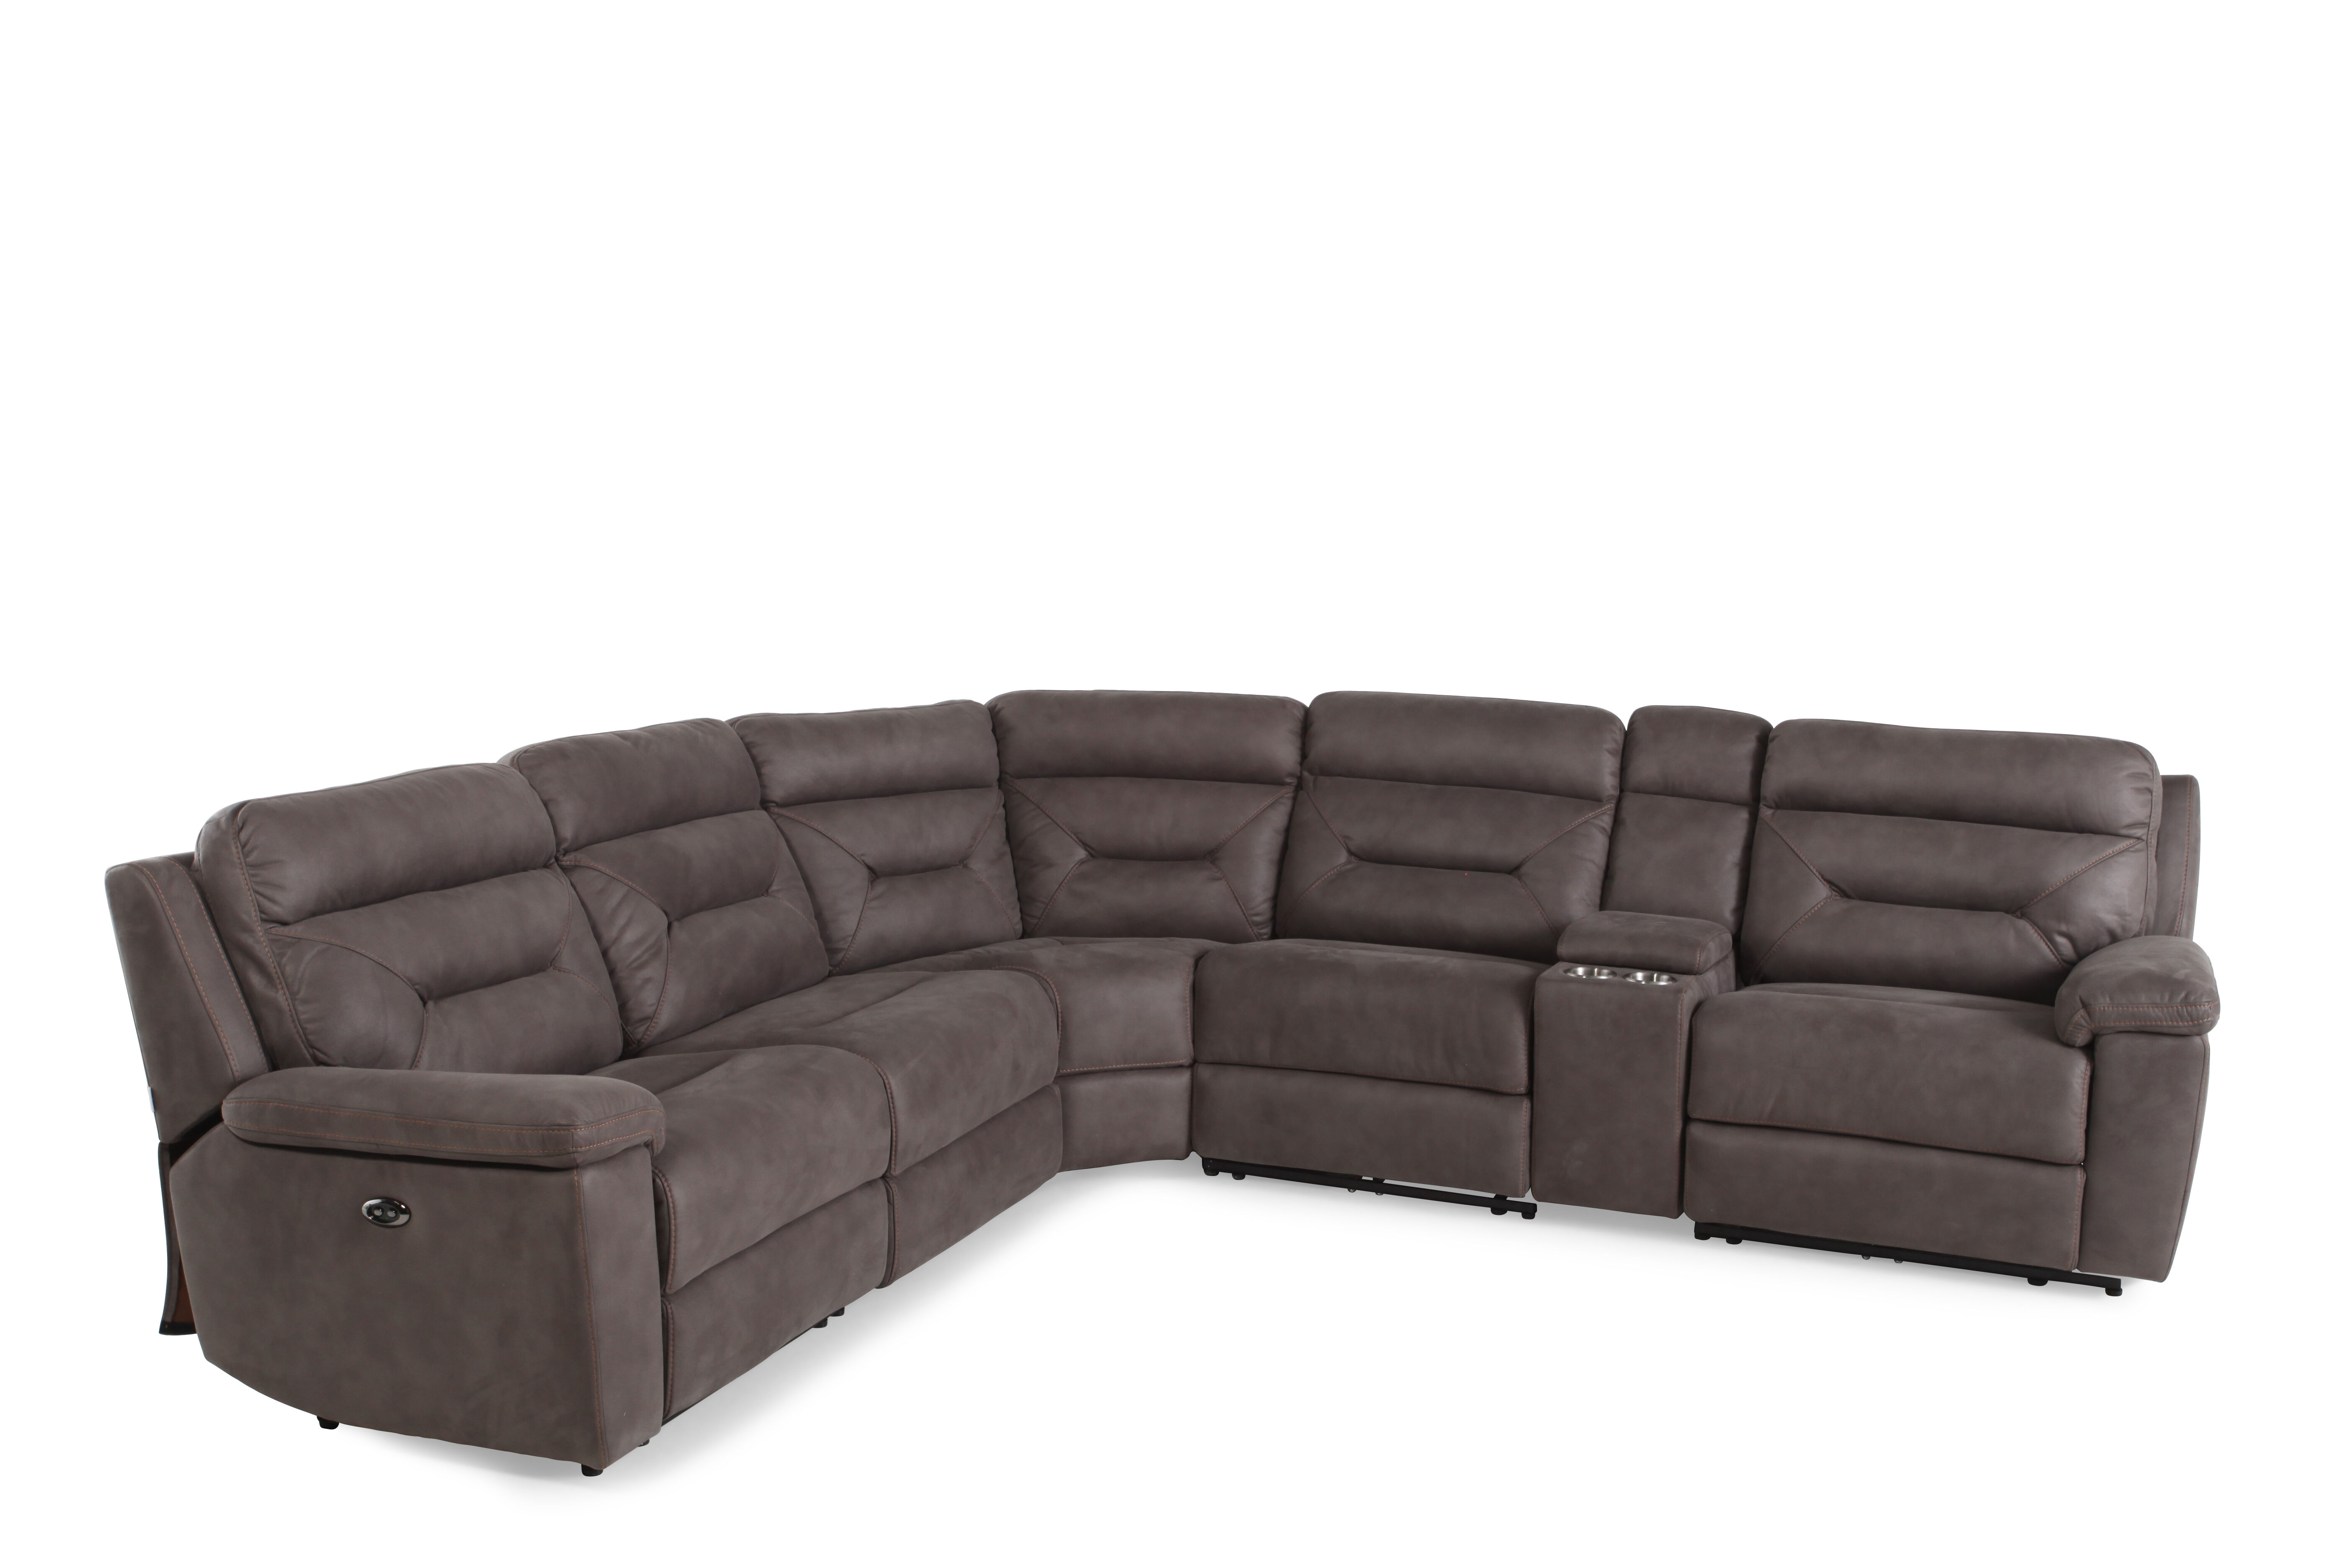 living room furniture stores mathis brothers rh mathisbrothers com